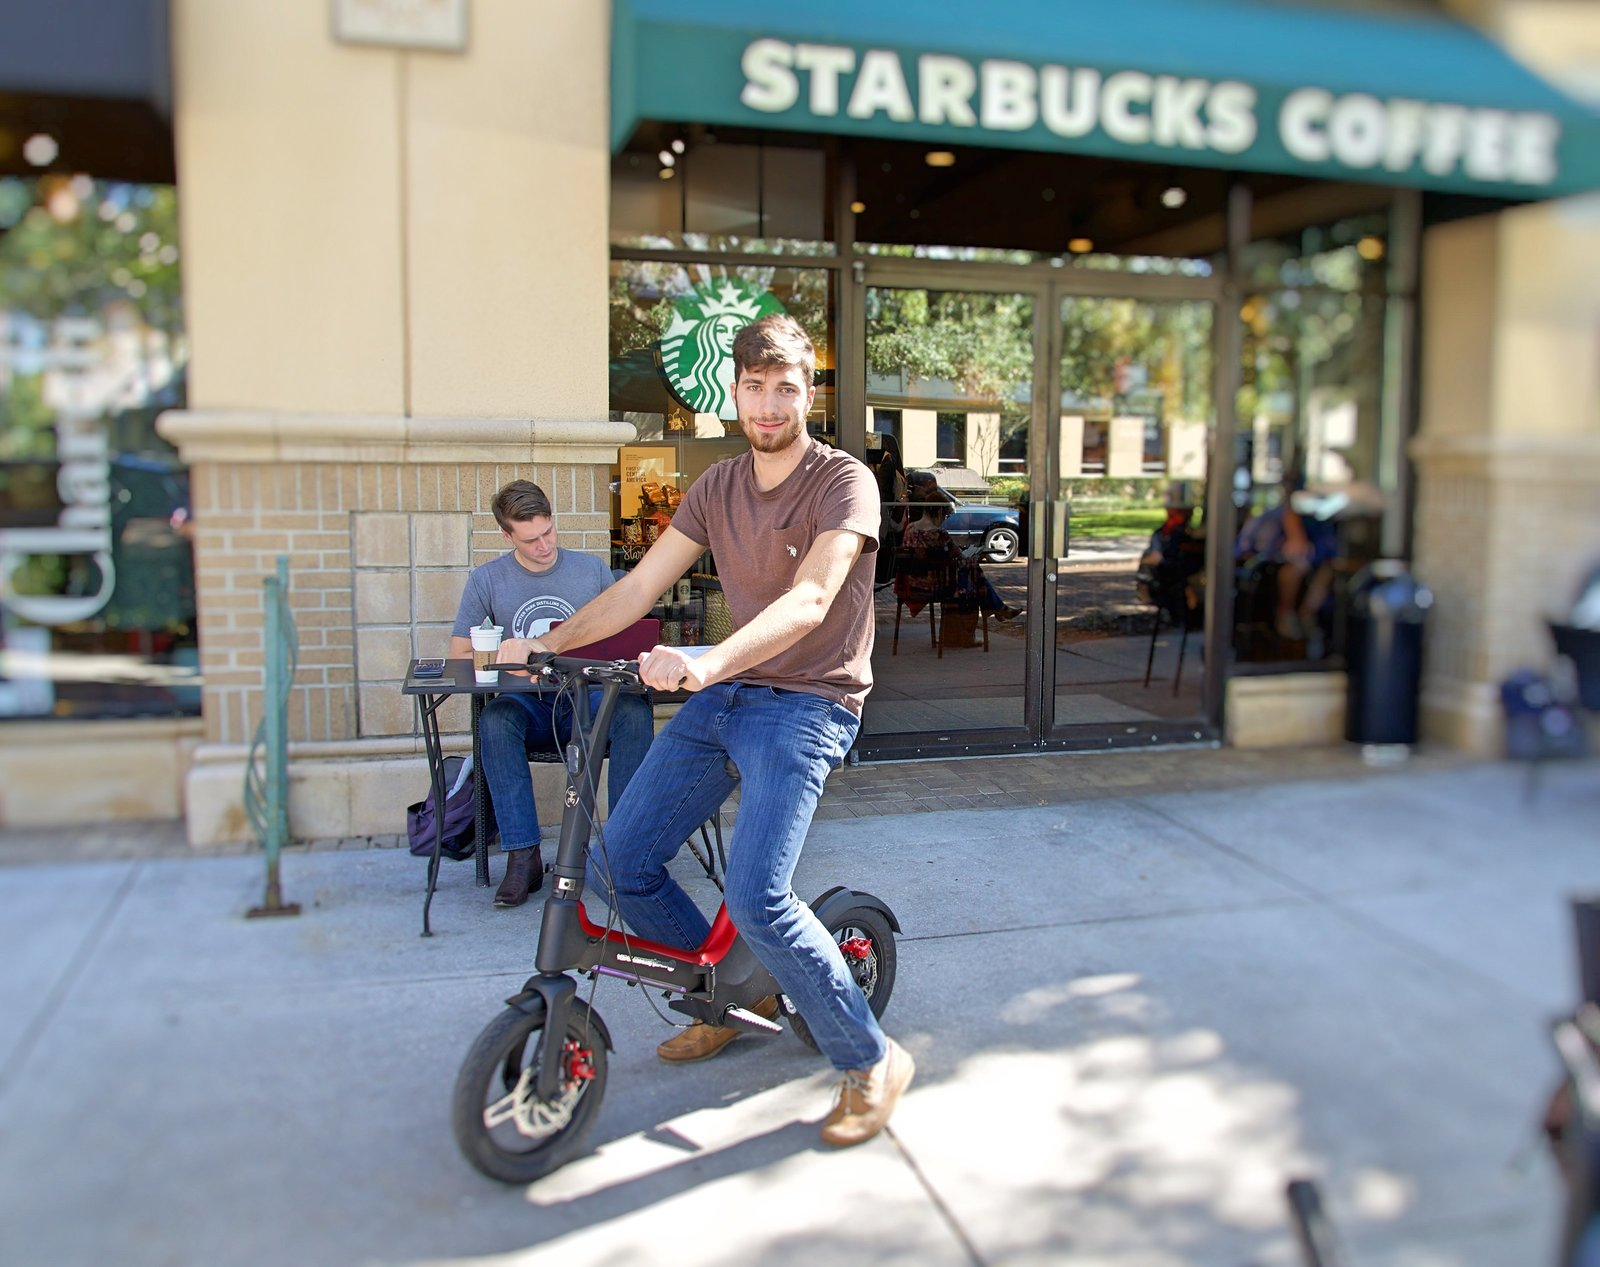 Student riding Red Go-Bike M3 to Starbucks Coffee